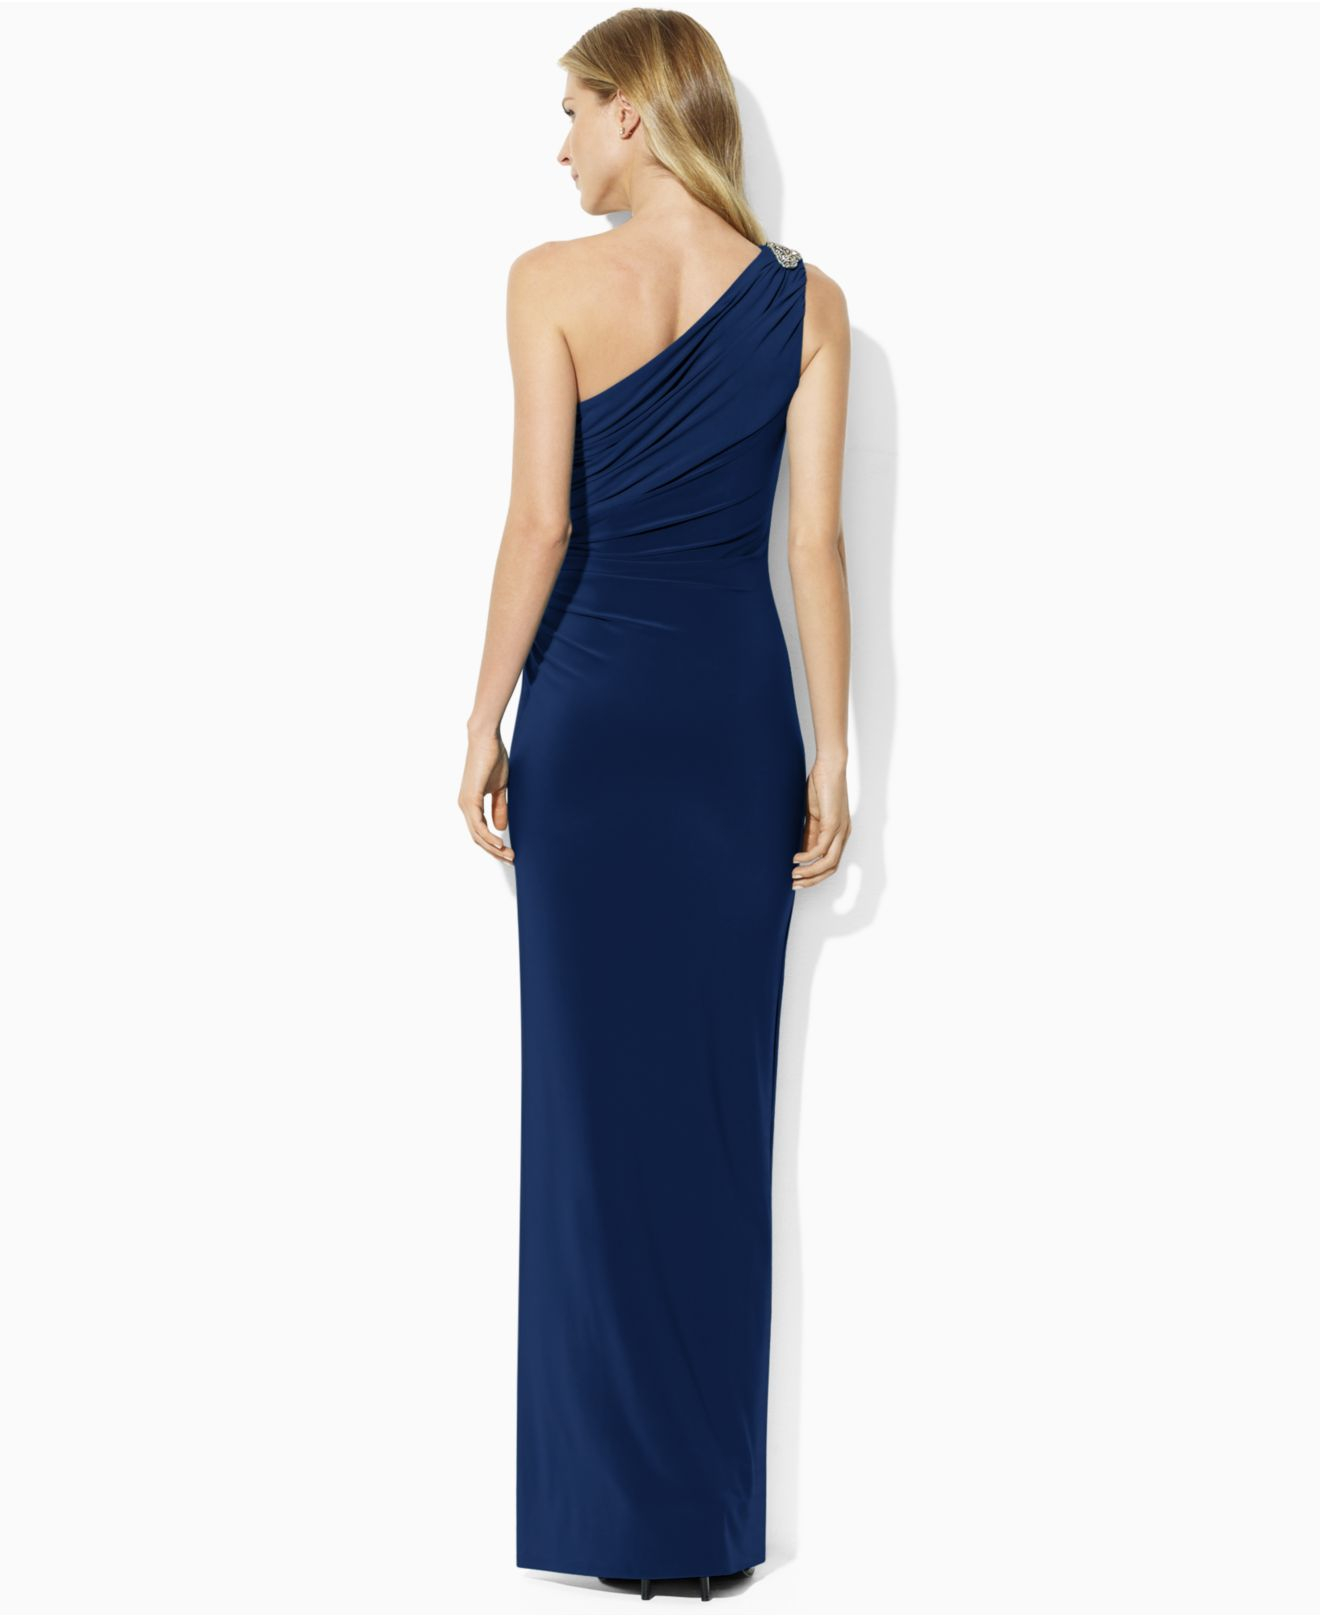 7f97791a7d Lauren by Ralph Lauren One-Shoulder Evening Gown in Blue - Lyst